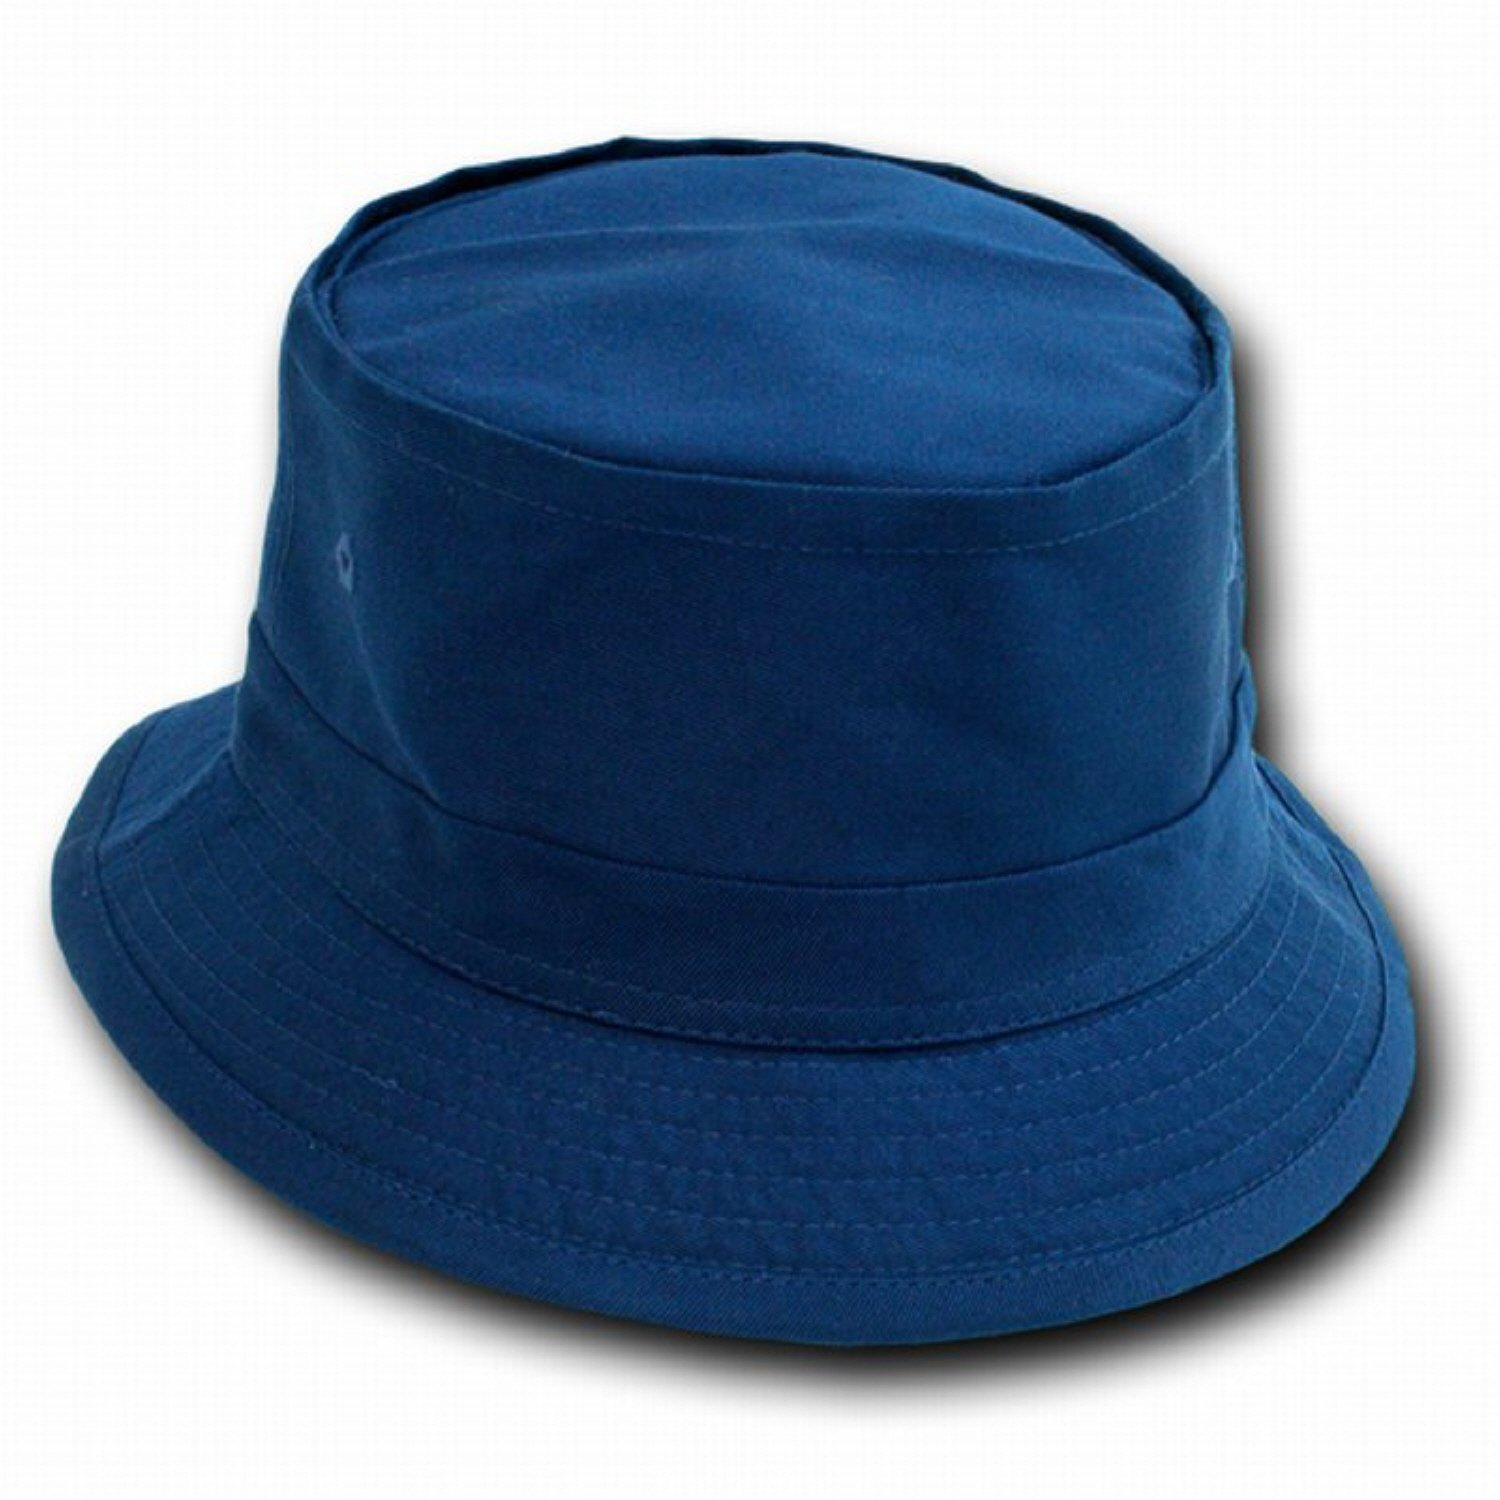 DECKY NAVY BLUE BUCKET HAT FISHING FISHERMAN S HAT SUN CAP SIZE SMALL MED  at Amazon Men s Clothing store  Other Products 685d9035e7f